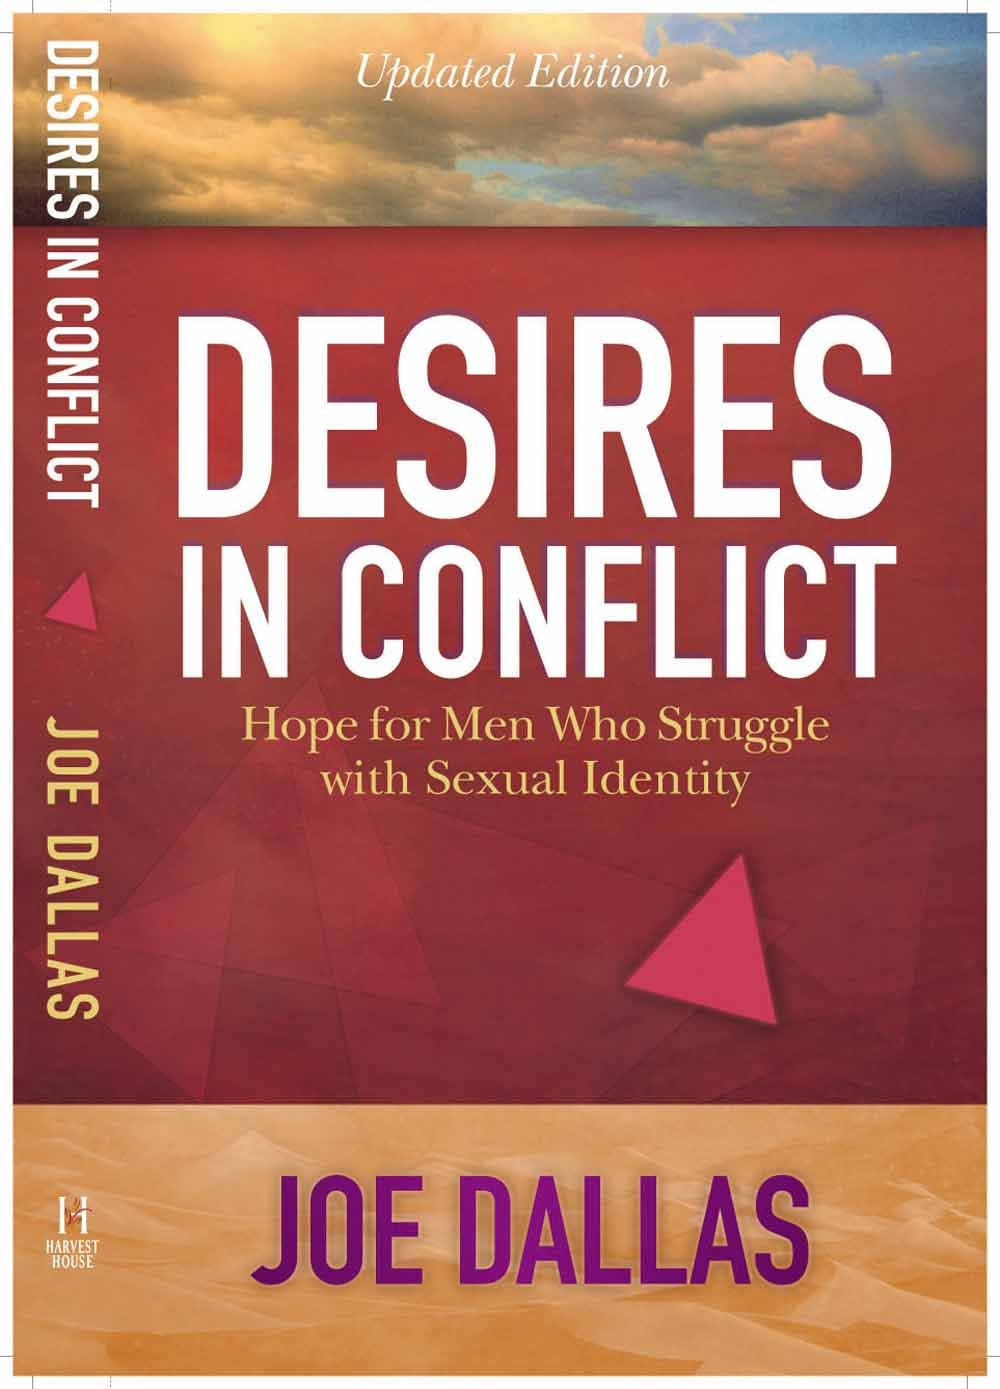 Struggling with sexual identity